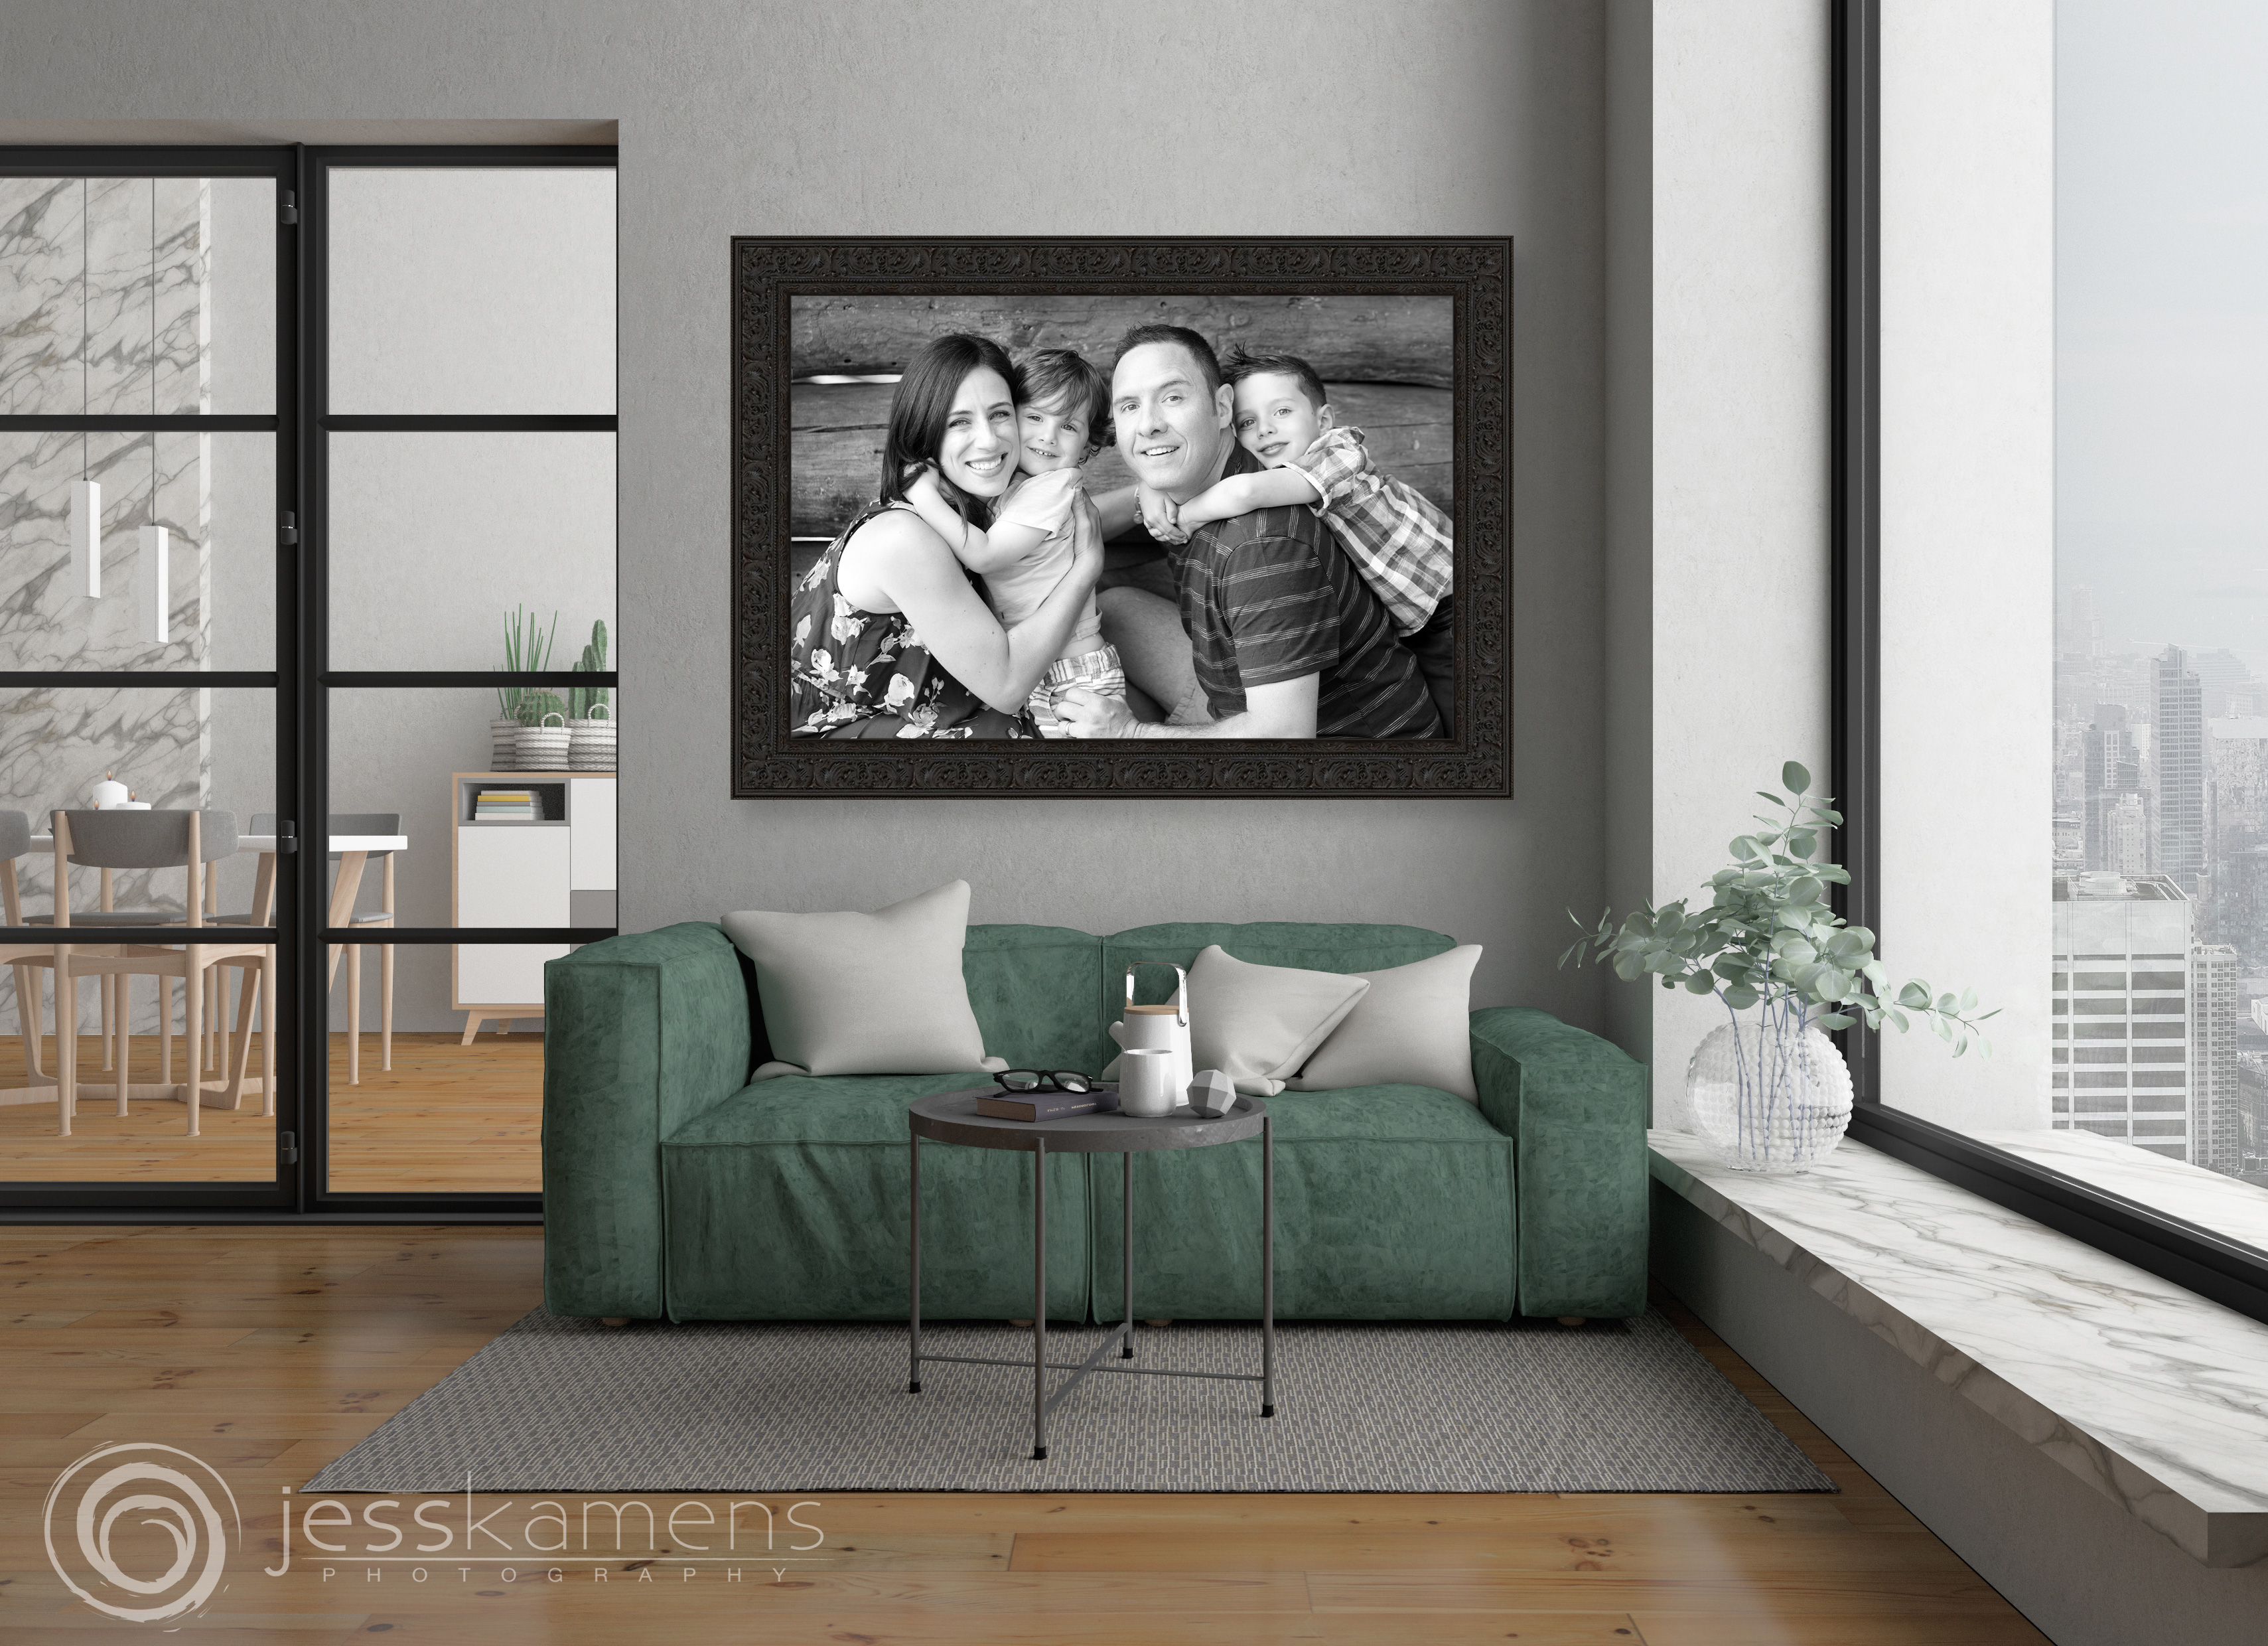 a beautfiul large framed canvas hangs above a green sofa in a living room. The portrait is black and white and of a family with a mom, dad and two boys hugging each other.